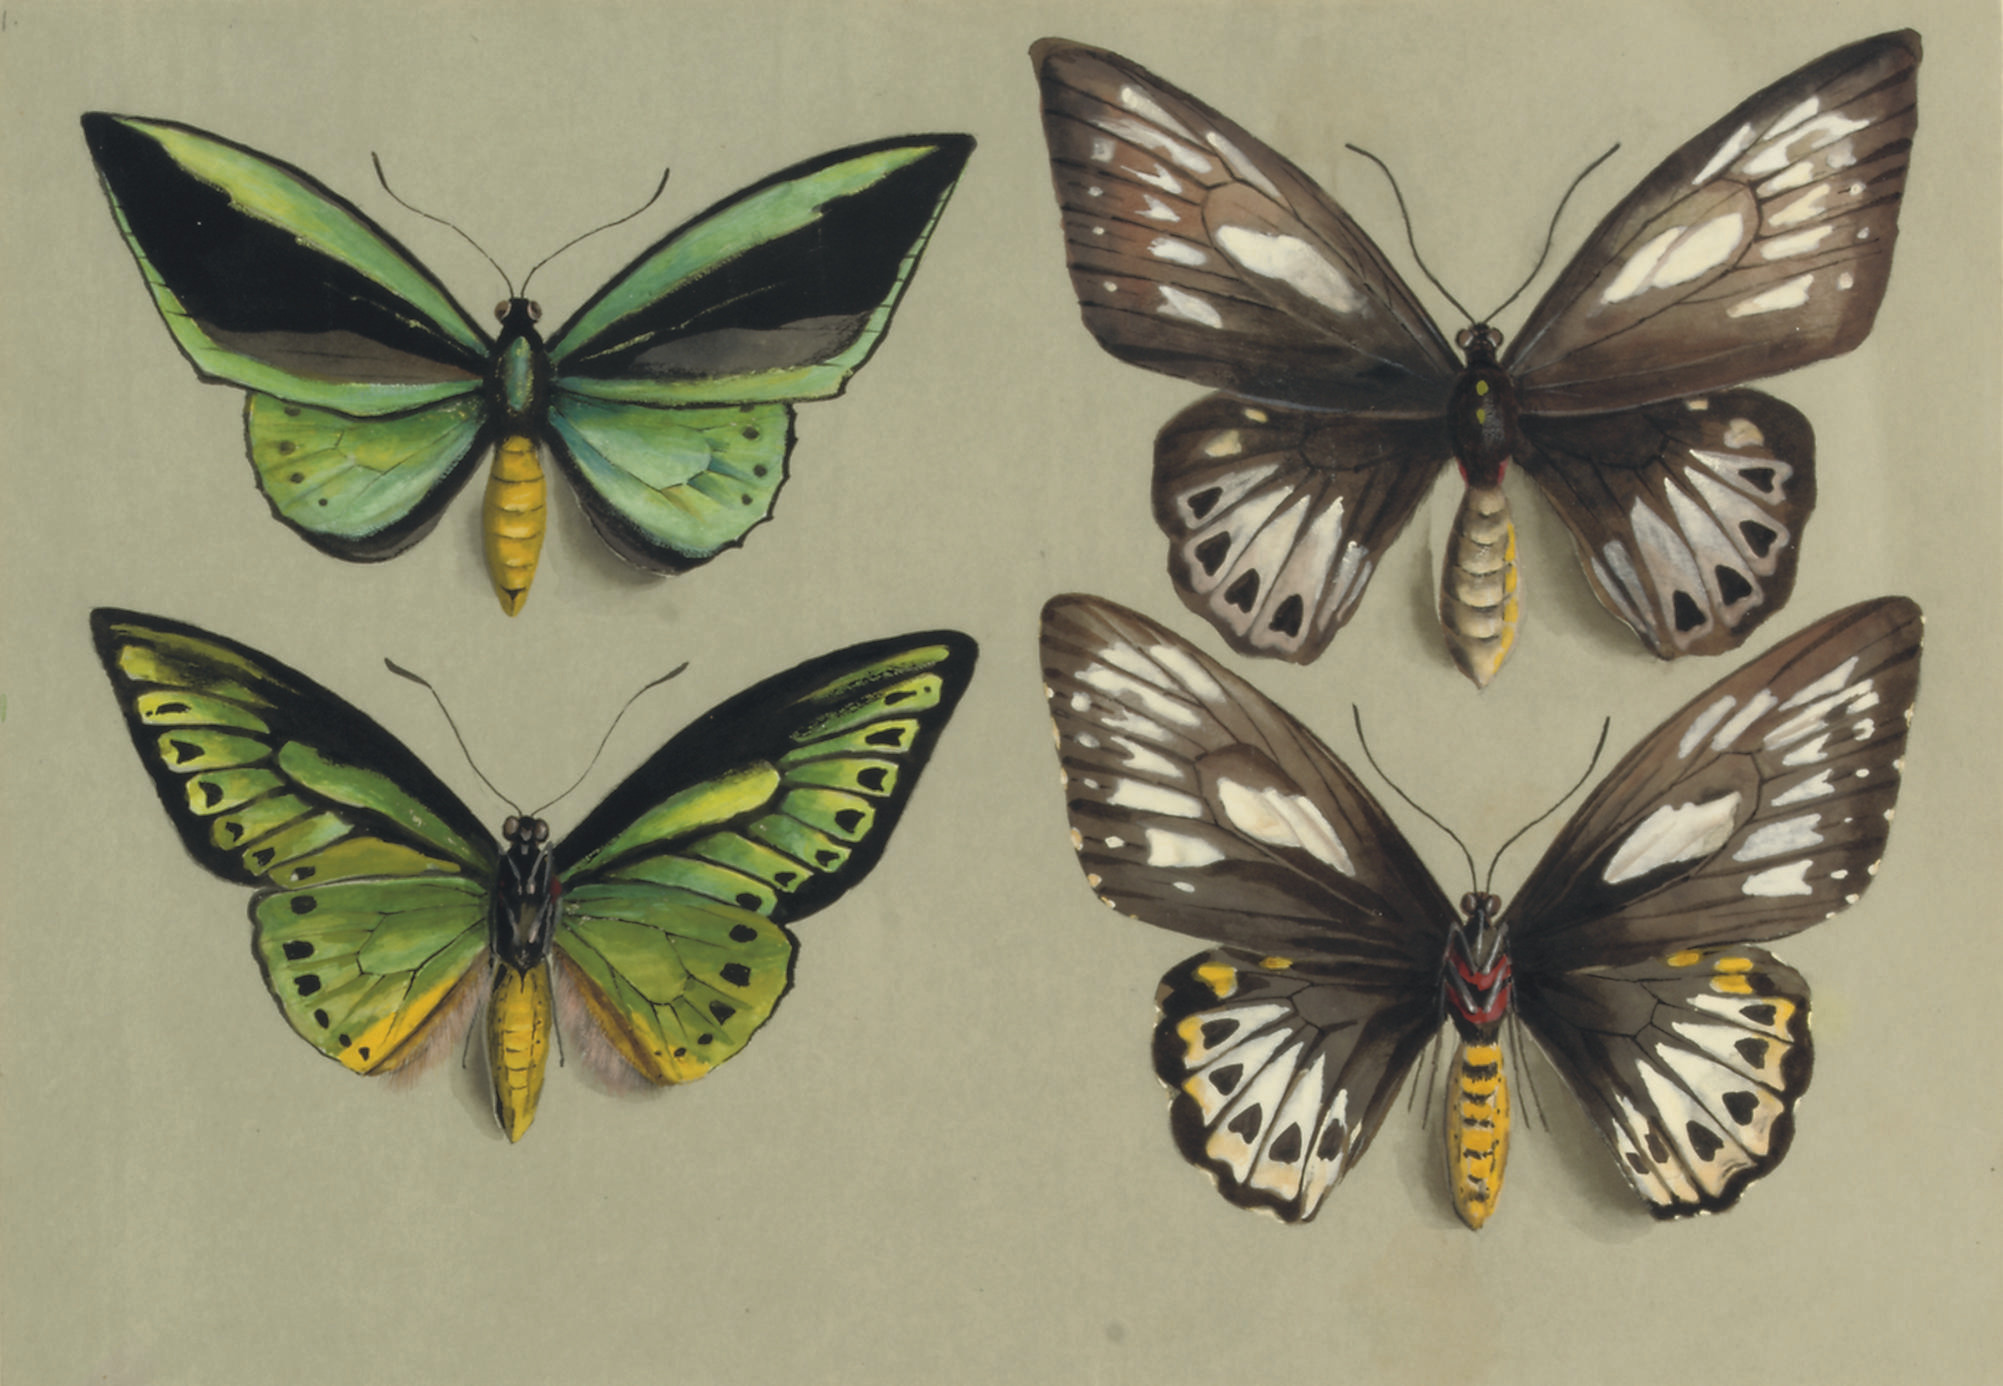 Four birdwing butterflies (family PAPILIONIDAE), in two columns, representing both sexes of the common birdwing (Troides (Ornithoptera) priamus)